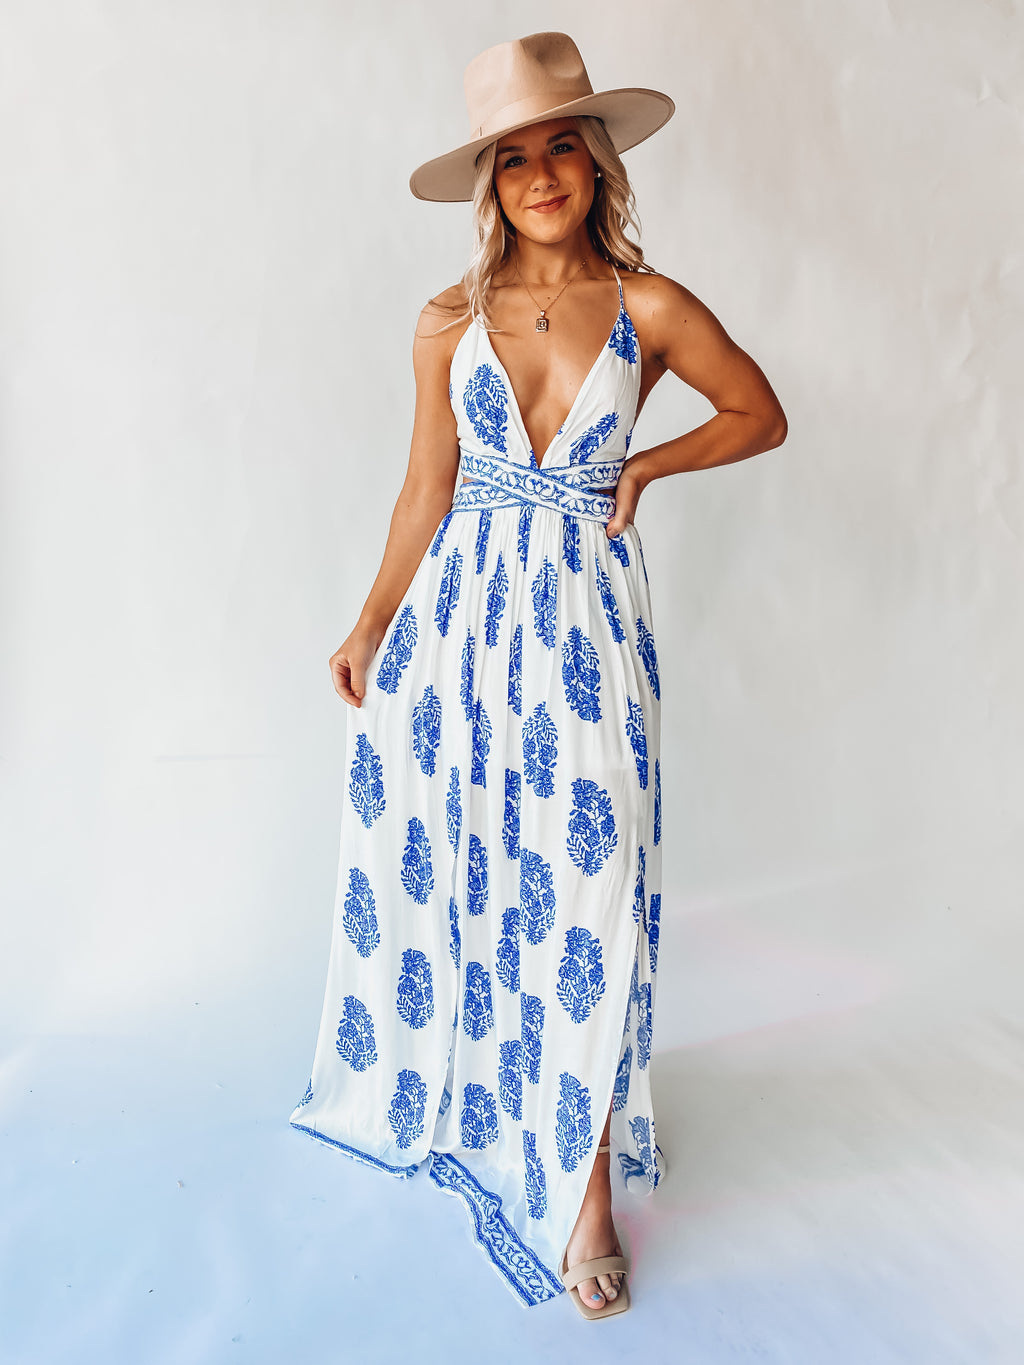 Meet Me In Greece Maxi Dress (Ivory) Pre- Order Ships End Of April